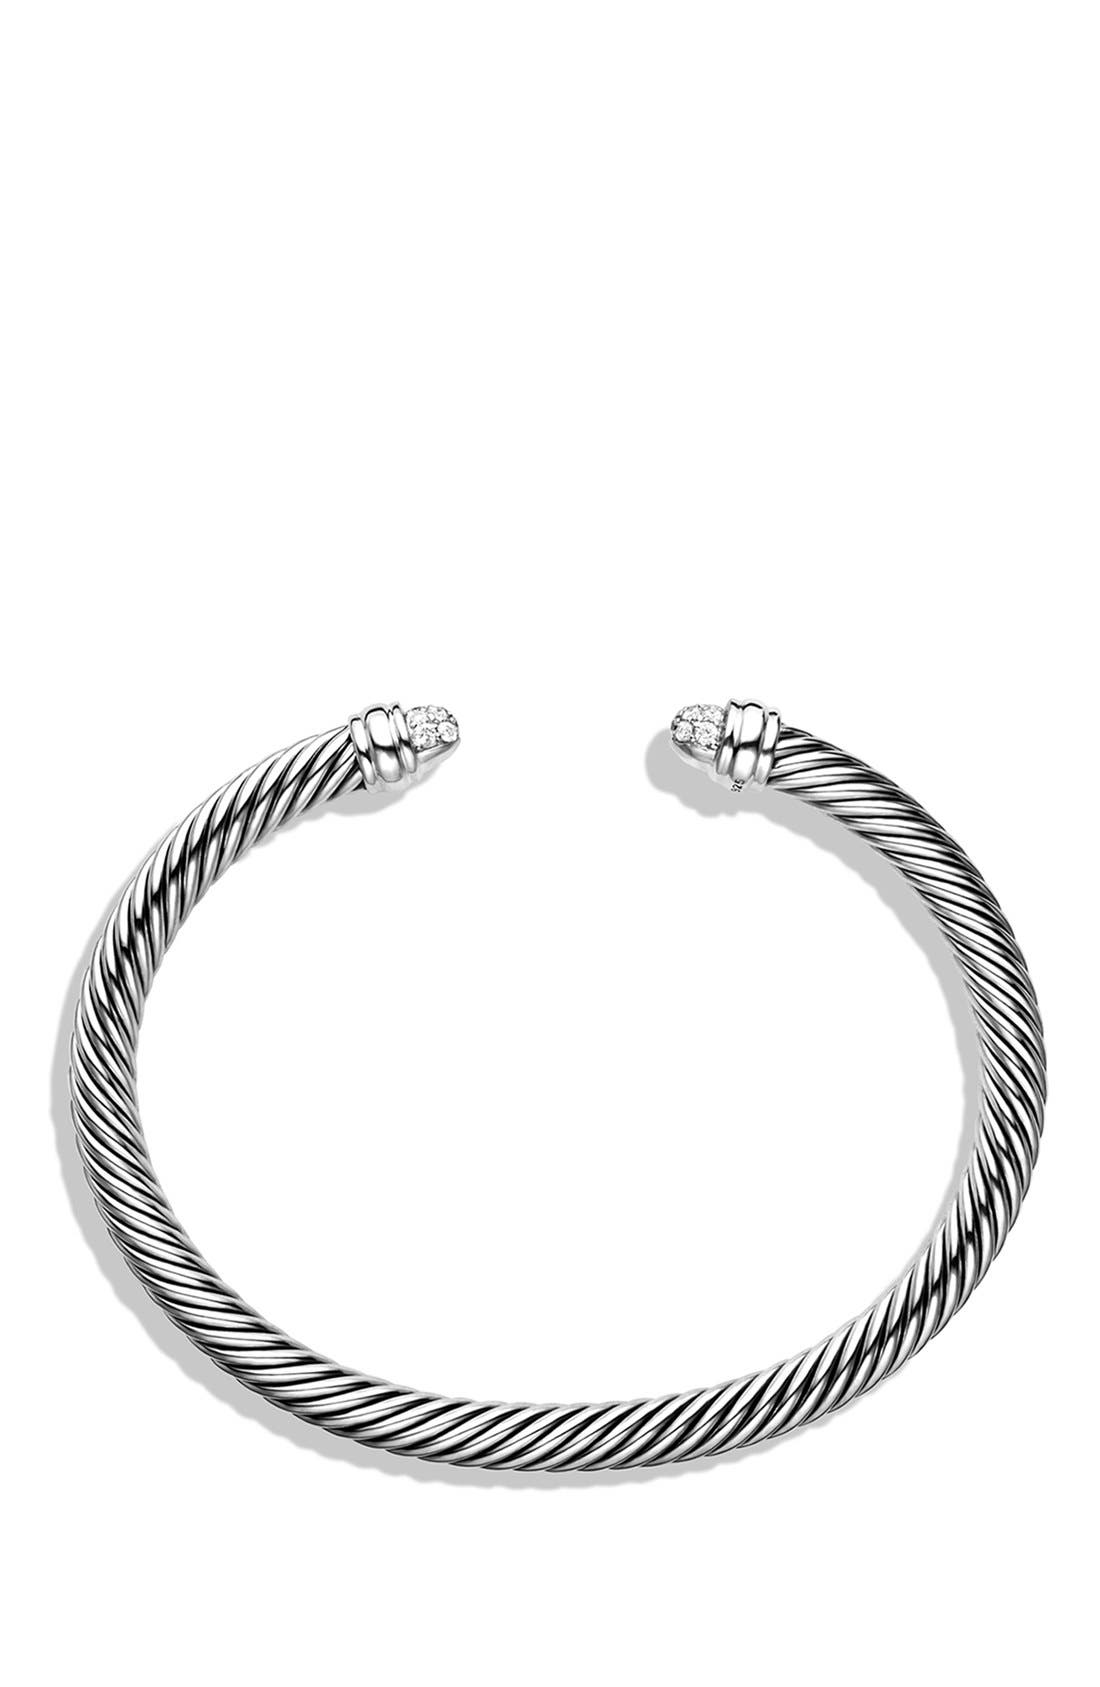 Cable Classics Bracelet with Diamonds, 5mm,                             Alternate thumbnail 2, color,                             DIAMOND